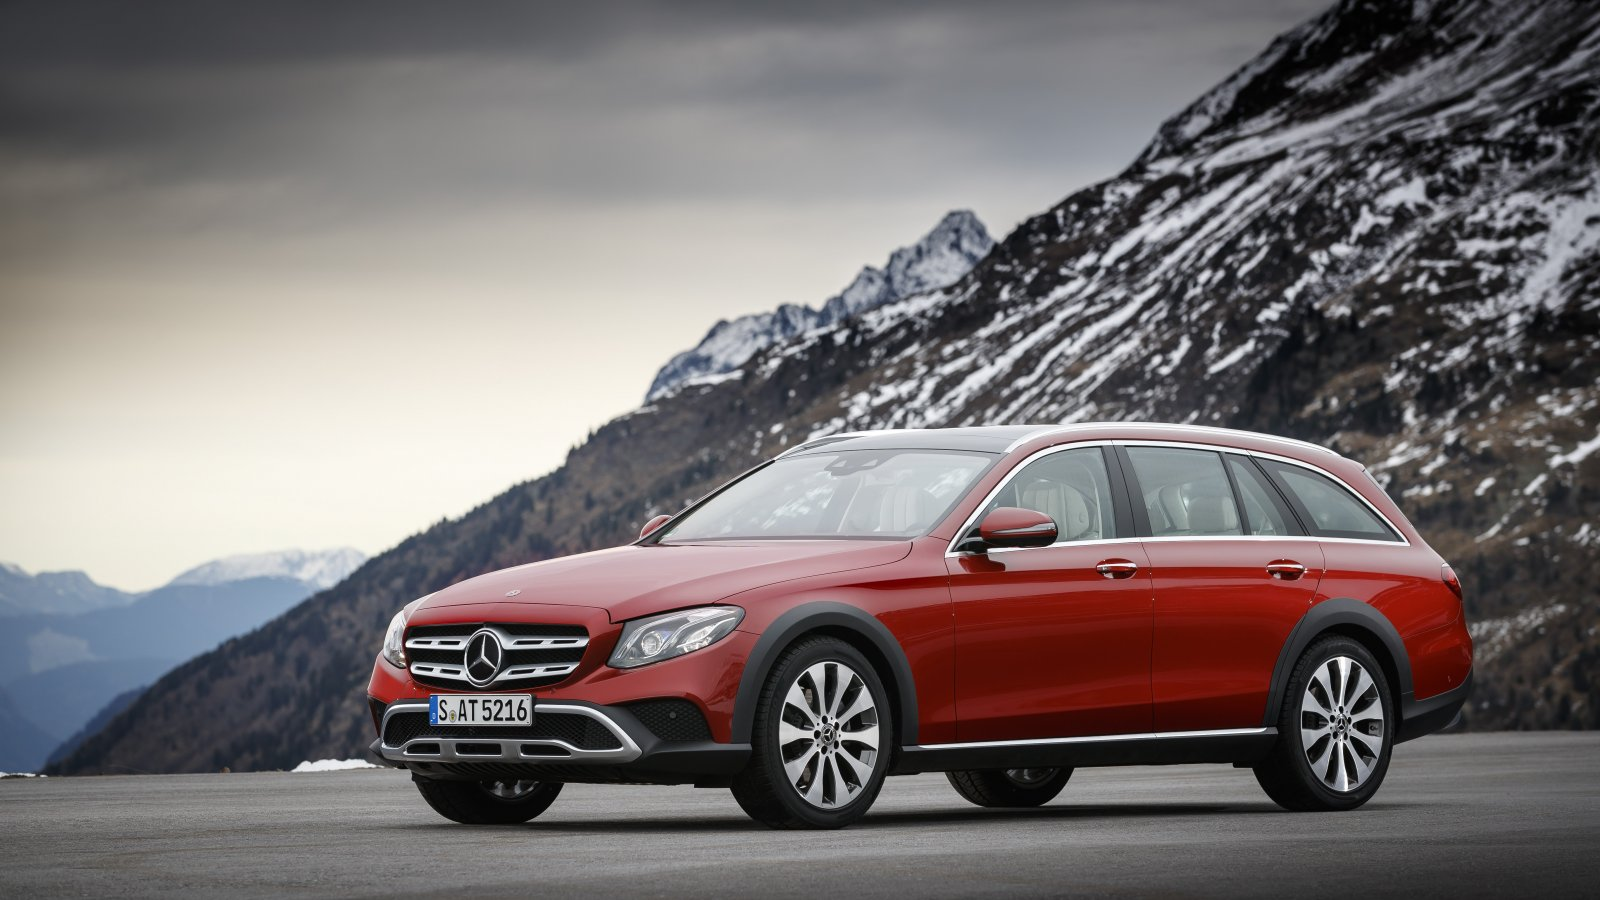 E 220 d 4MATIC All-Terrain Farbe: designo hyazinthrot metallic; Leder Nappa macchiatobeige/espressobraun E 220 d 4MATIC All-Terrain Paint: designo hyacinth red metallic; Nappa leather macchiato beige/espresso brown All Terrain Kraftstoffverbrauch kombiniert: 5,2 l/100 km, CO2-Emissionen kombiniert: 137 g/km Fuel consumption, combined: 5.2 l/100 km, CO2 emissions, combined: 137 g/km